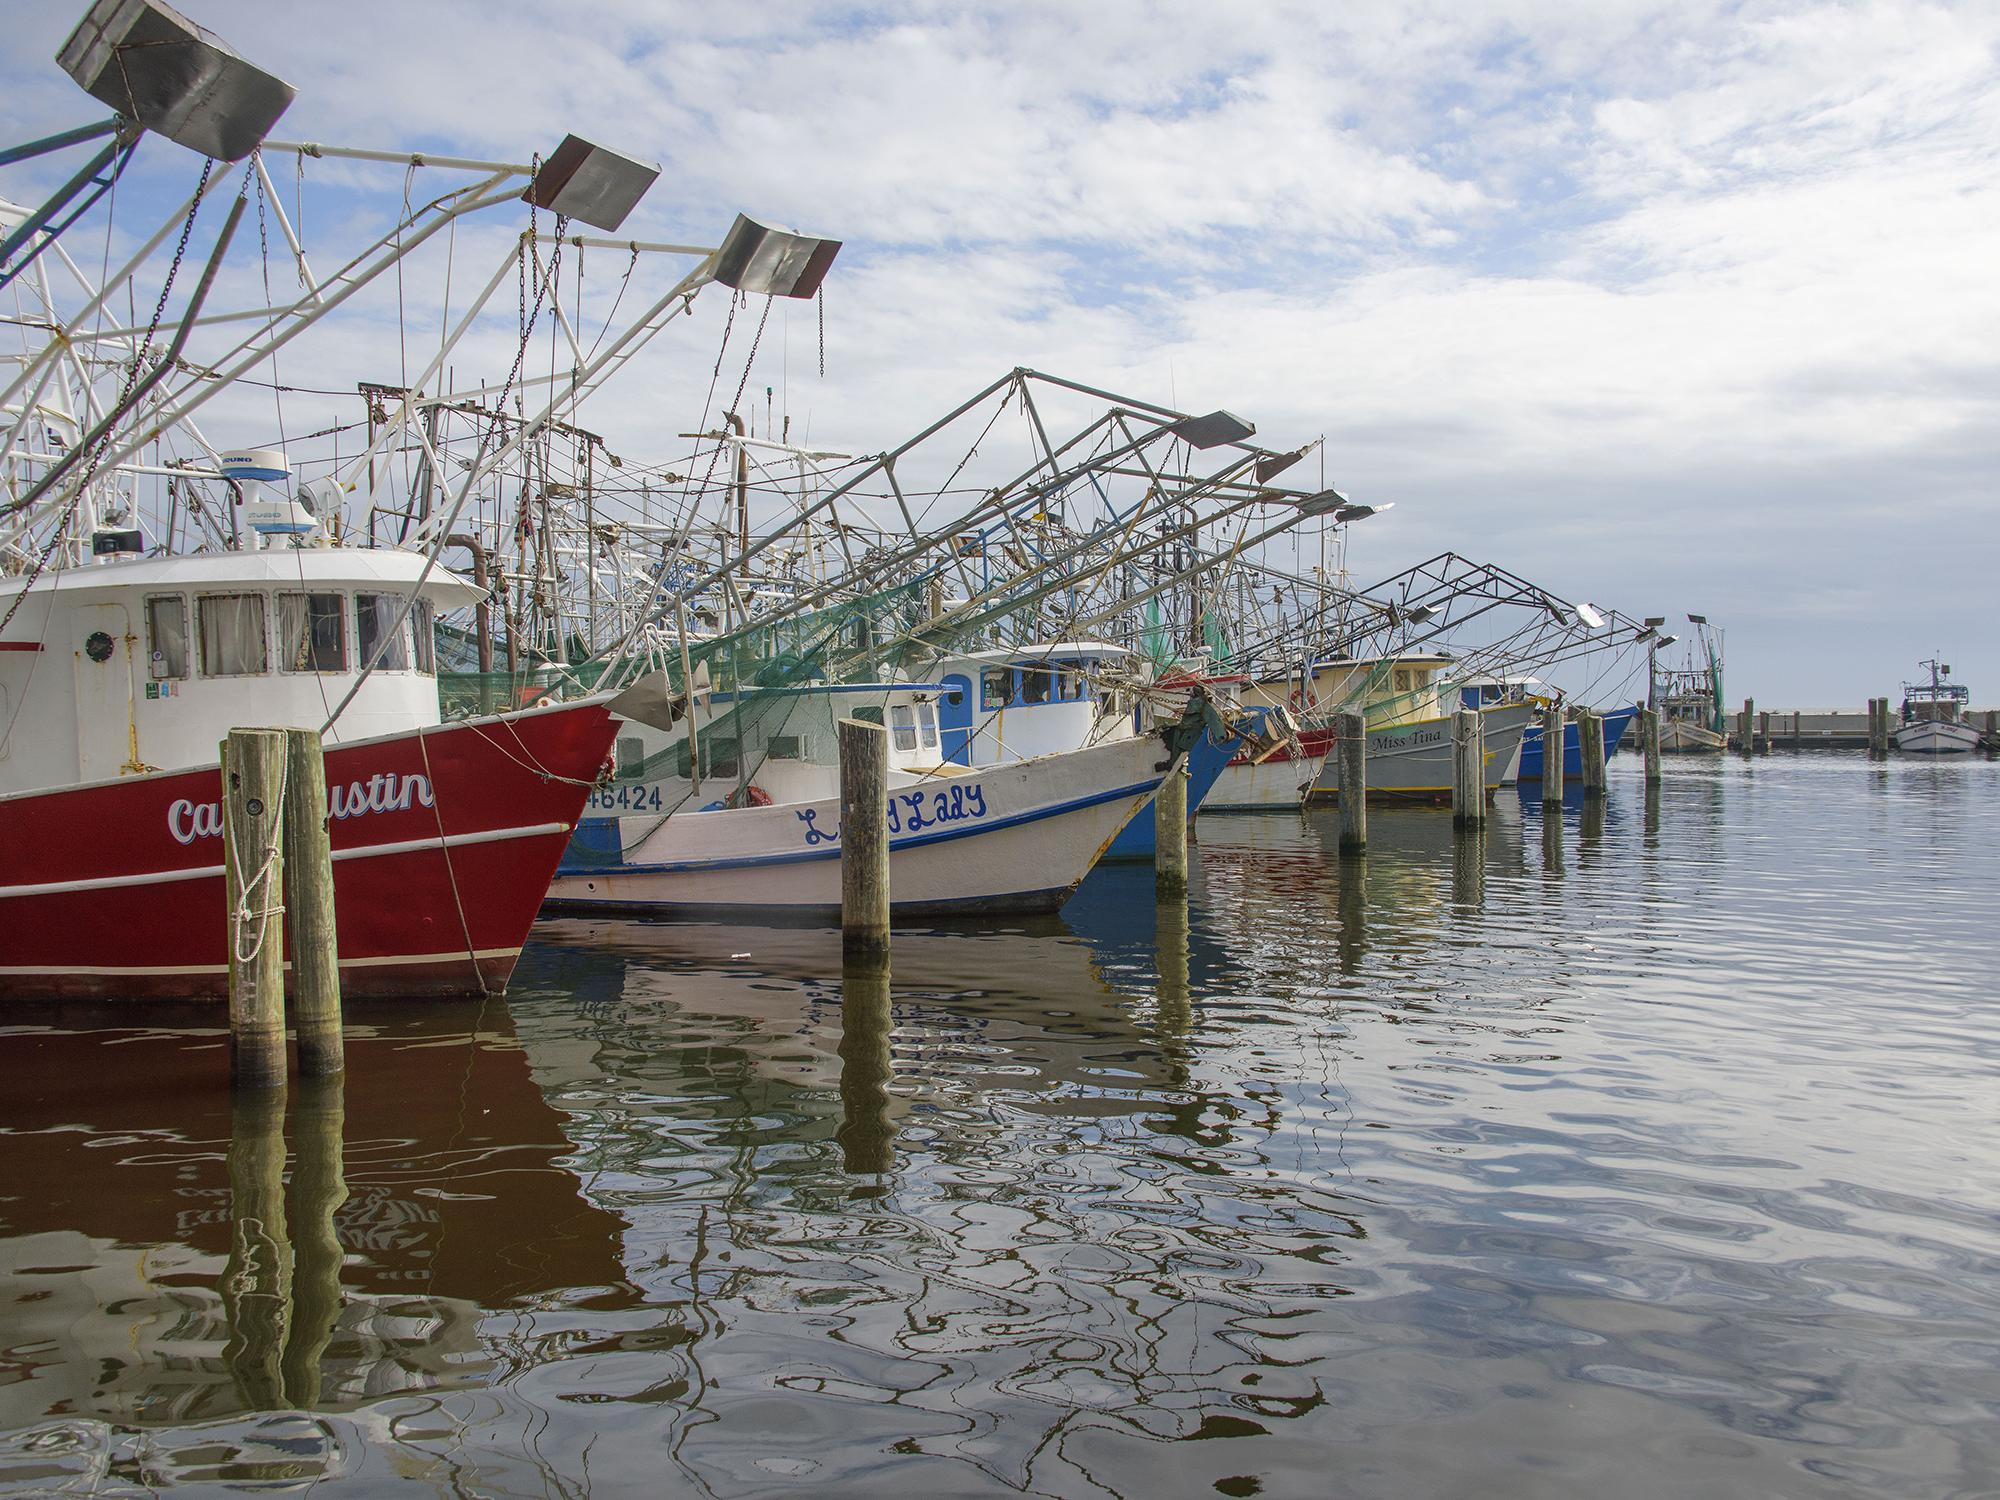 Shrimp boats at rest in the Biloxi Small Craft Harbor in Biloxi, Mississippi, Jan. 25, 2016. (Photo by MSU Extension Service/Kevin Hudson)